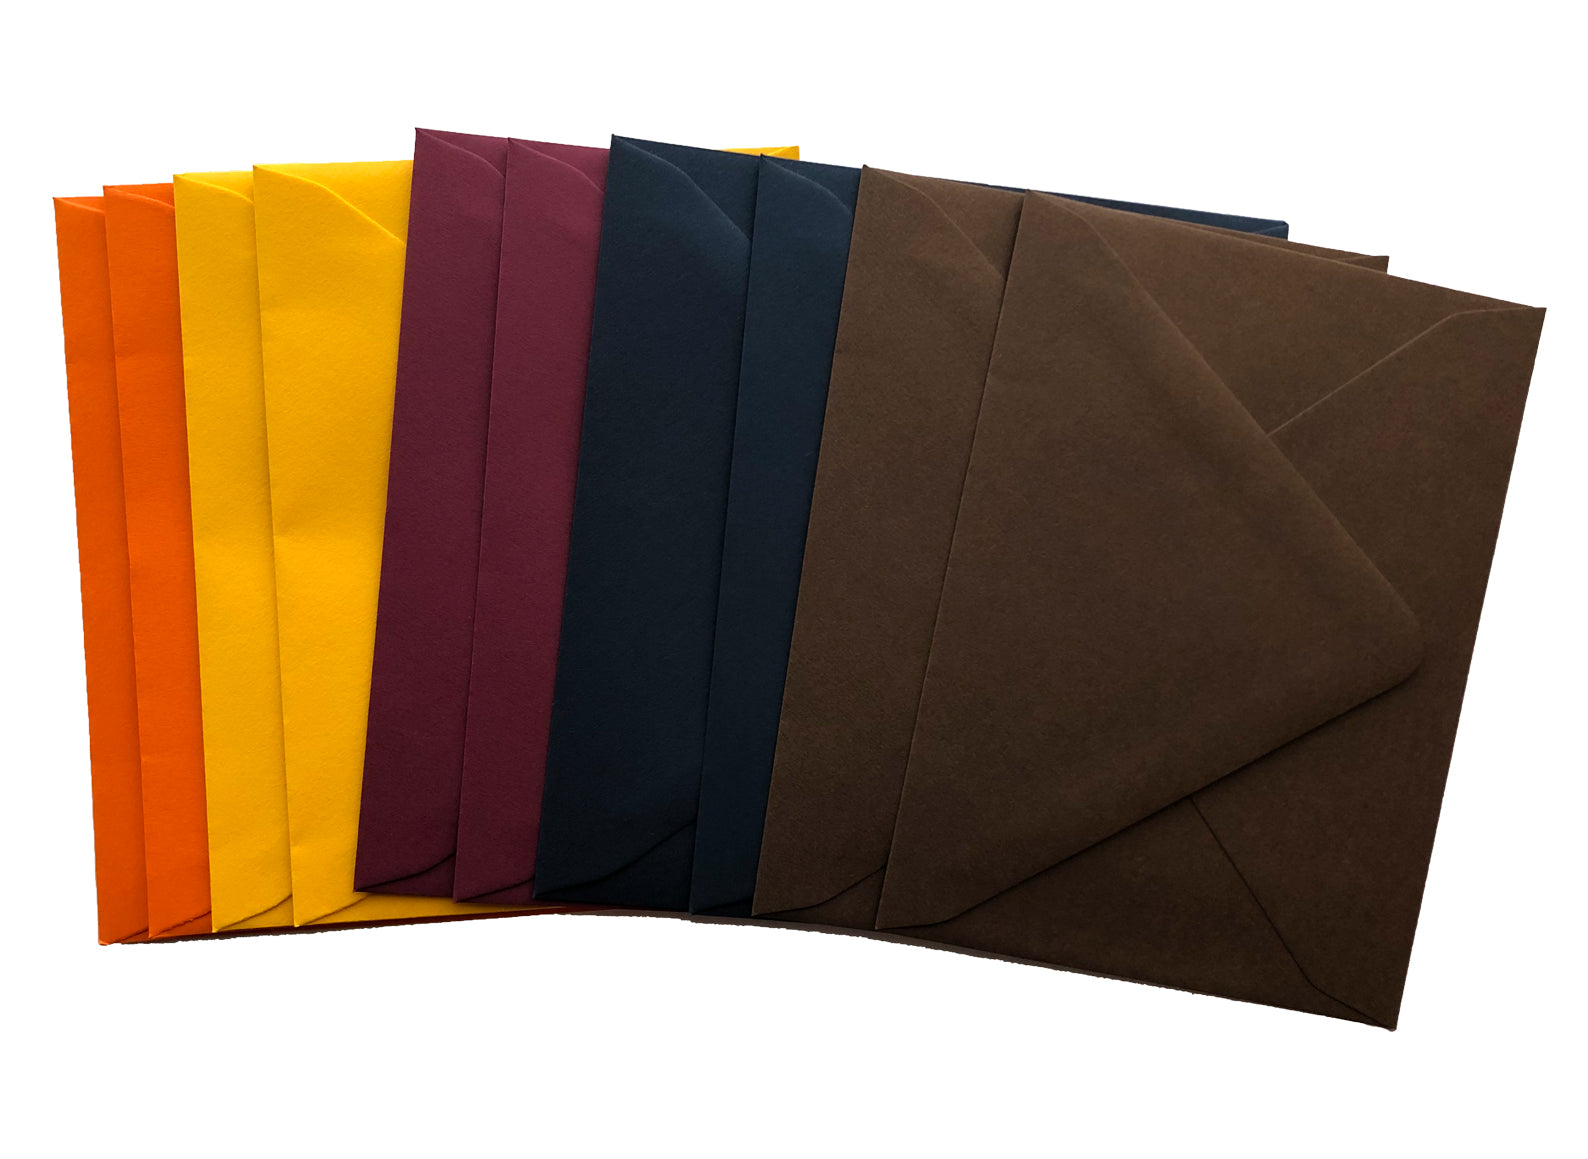 a set of 10 envelopes in fall colors- orange, yellow, burgundy, navy, and brown